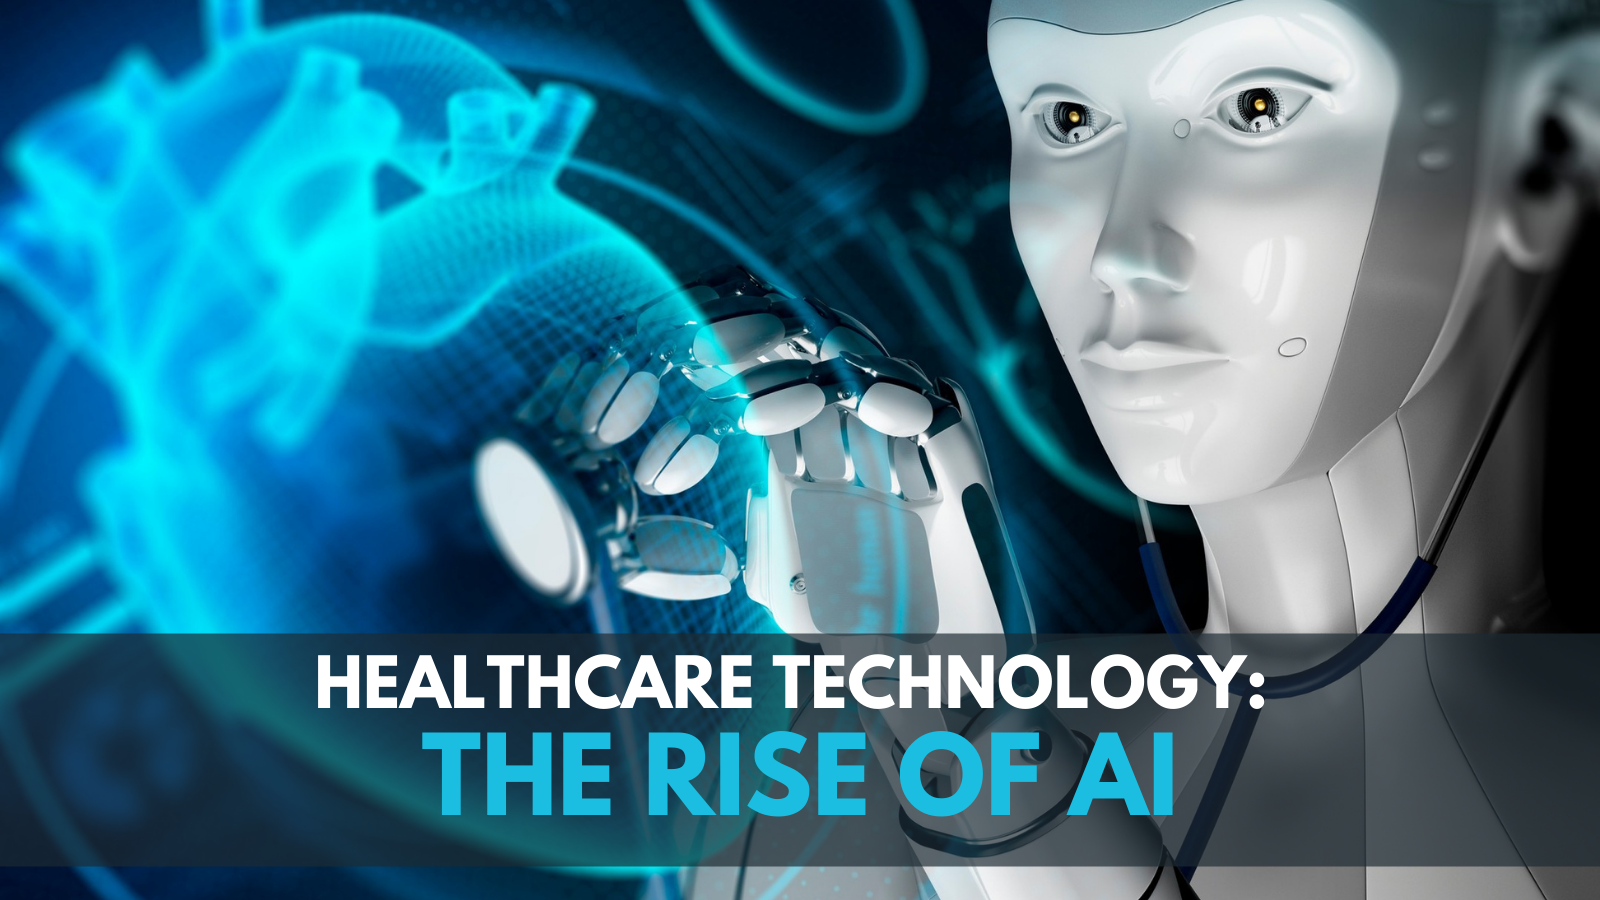 Blog - Trends in Healthcare technology - The rise of AI